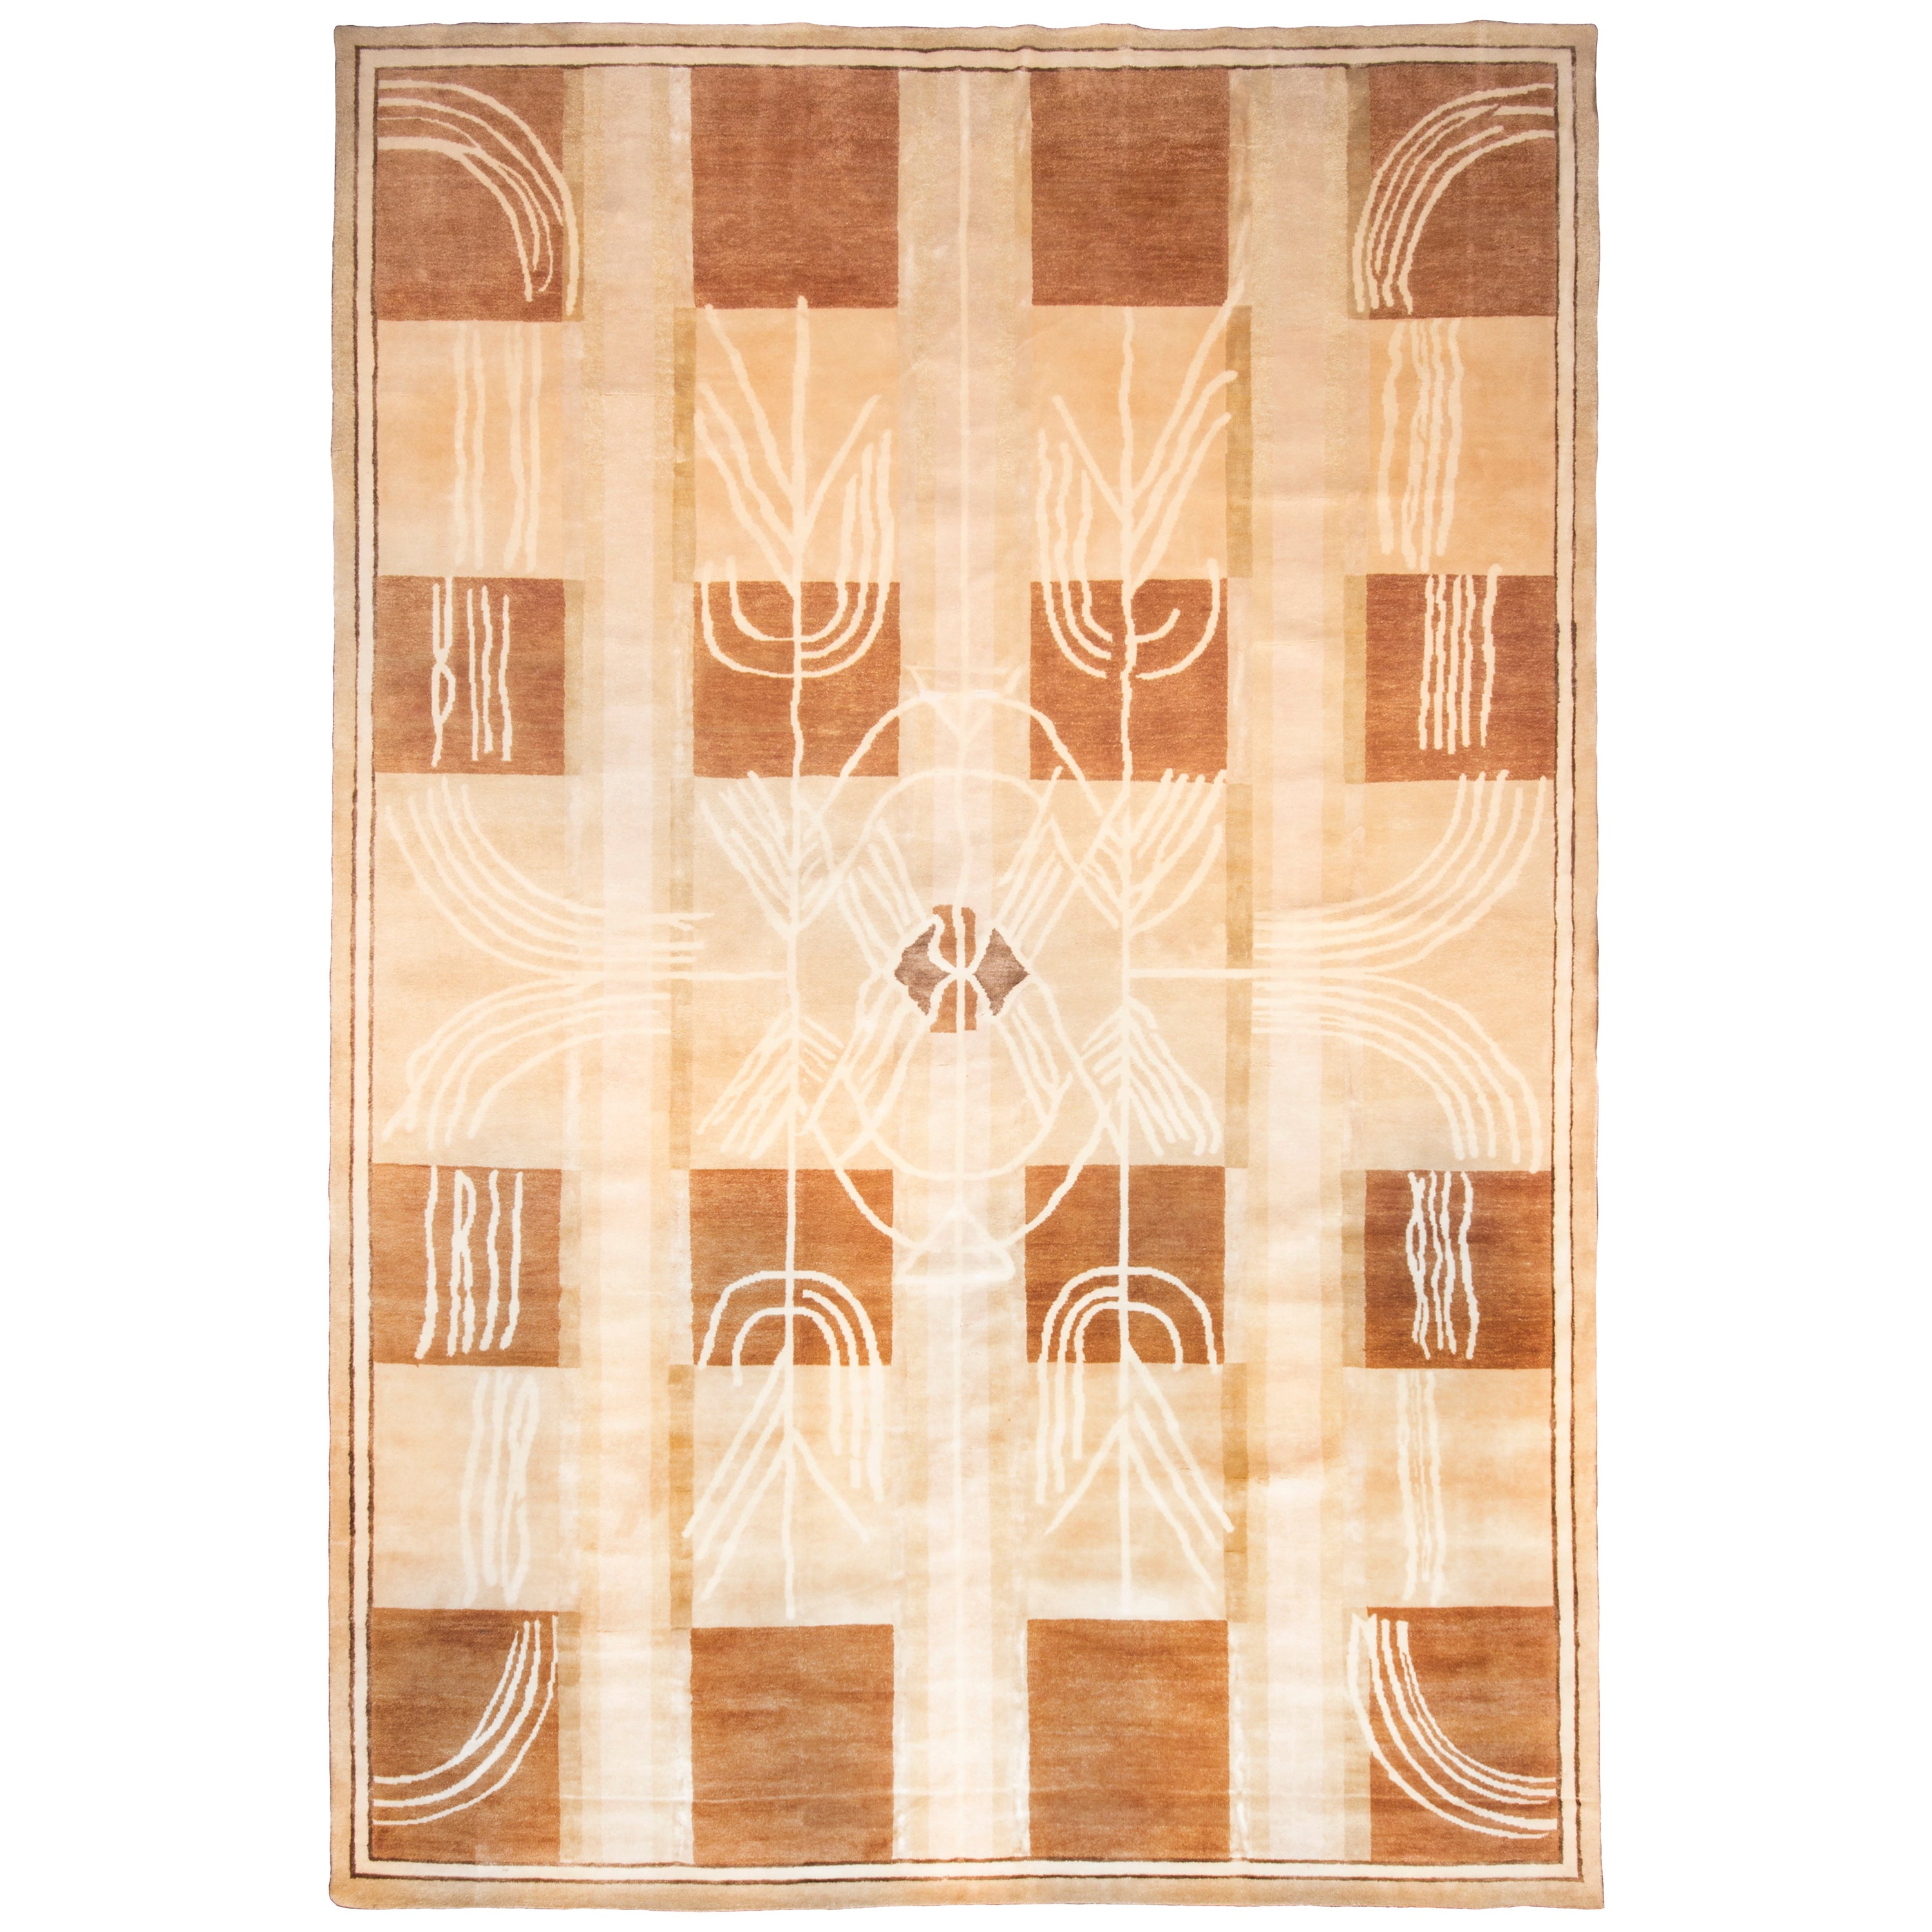 Contemporary Art Deco Style Beige and White Wool Rug with Air Design